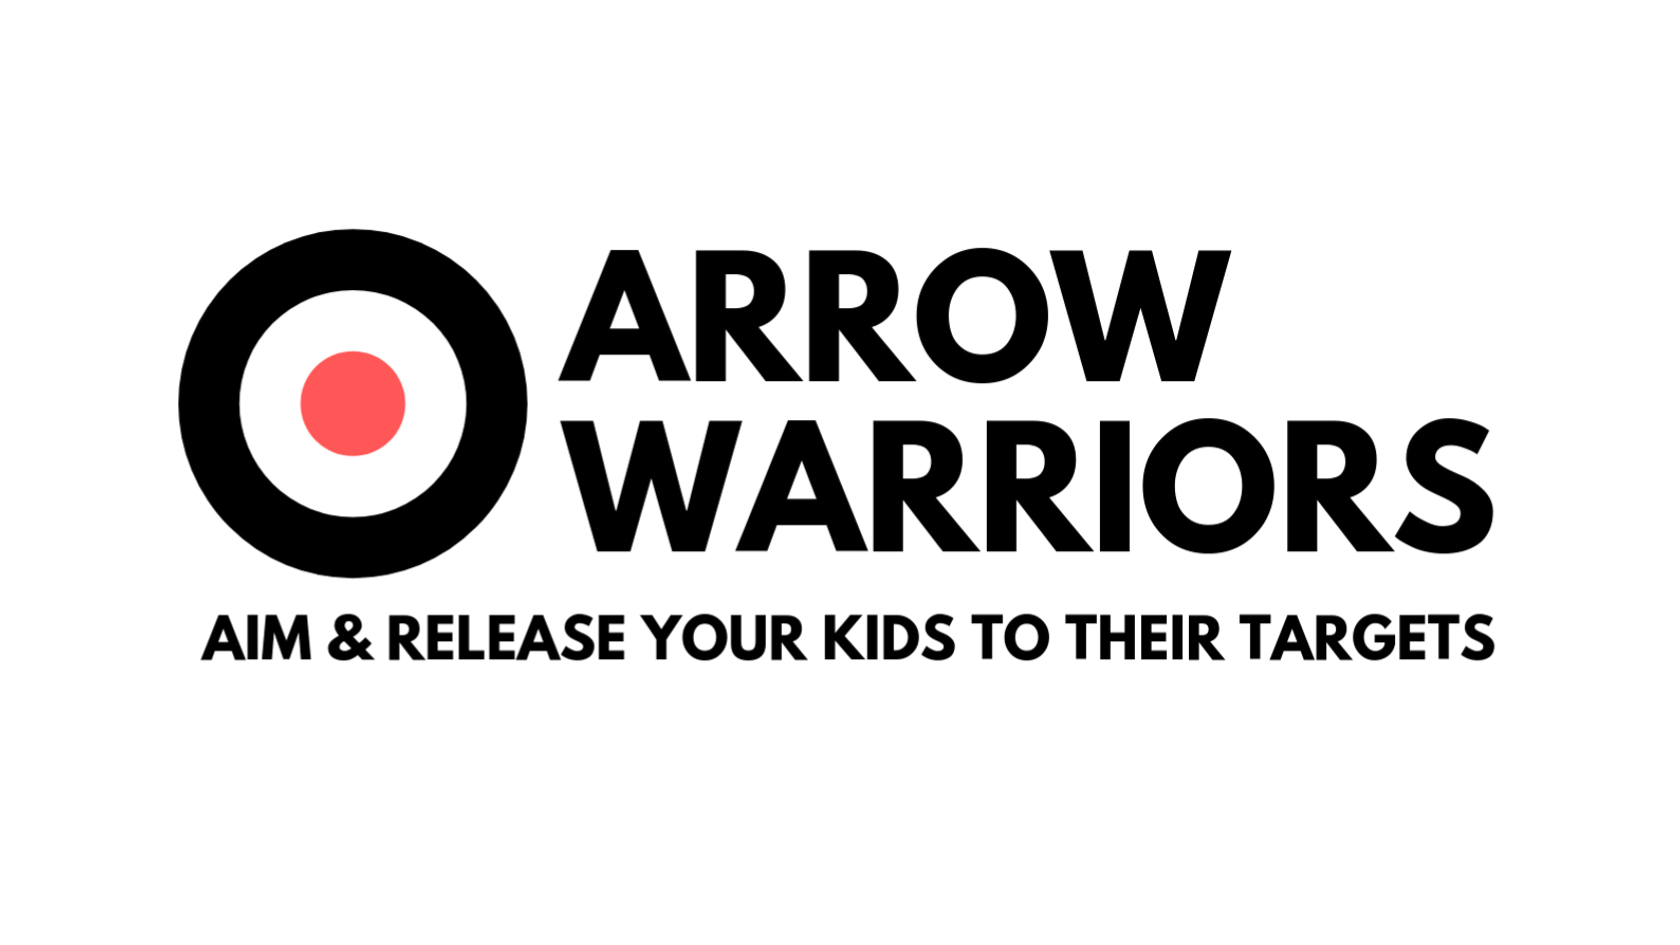 "We started Arrow Warriors to give parents resources to help them raise up their children to prepare them for life. Psalms 127:4 says "" Like arrows in the hand of a warrior, so are the children of one's youth. "" We believe children are a blessing from the Lord. Every kid was created on purpose for a purpose. Our job as a parent, like a warrior with their bow and quiver of arrows, is to aim our children and release them to hit their targets.  Click the Arrow Warrior image to get more parenting resources."